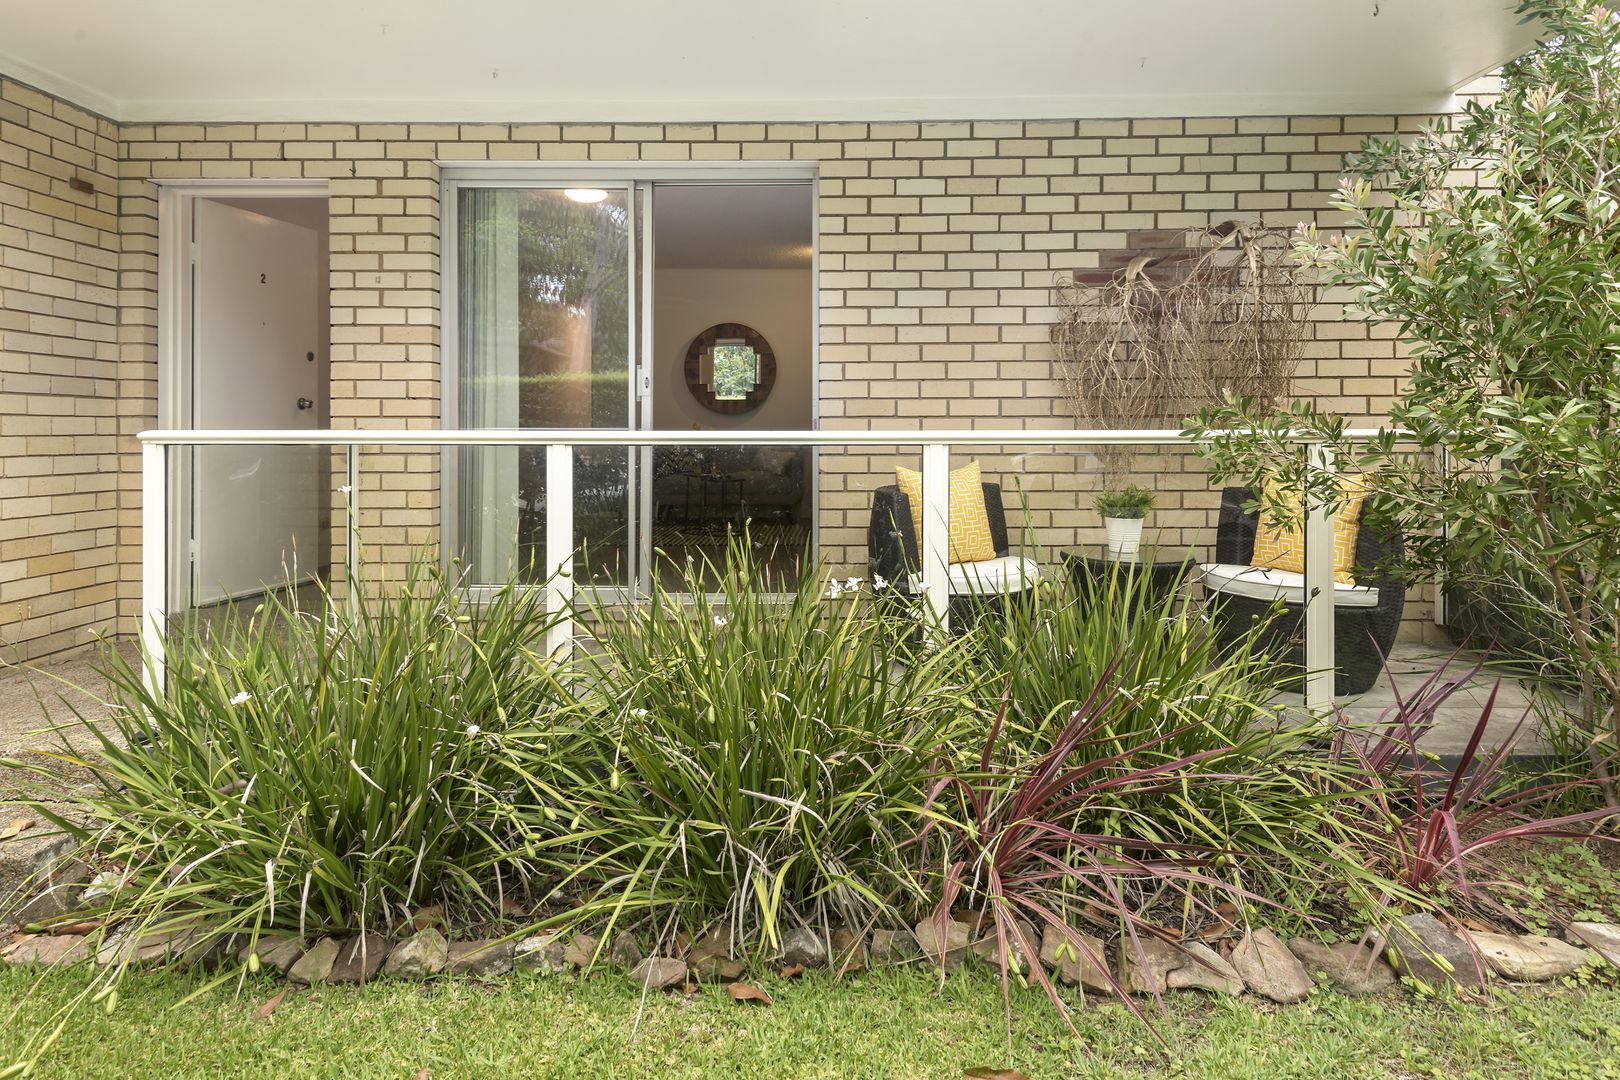 2/16 Soldiers Avenue, Freshwater NSW 2096, Image 1